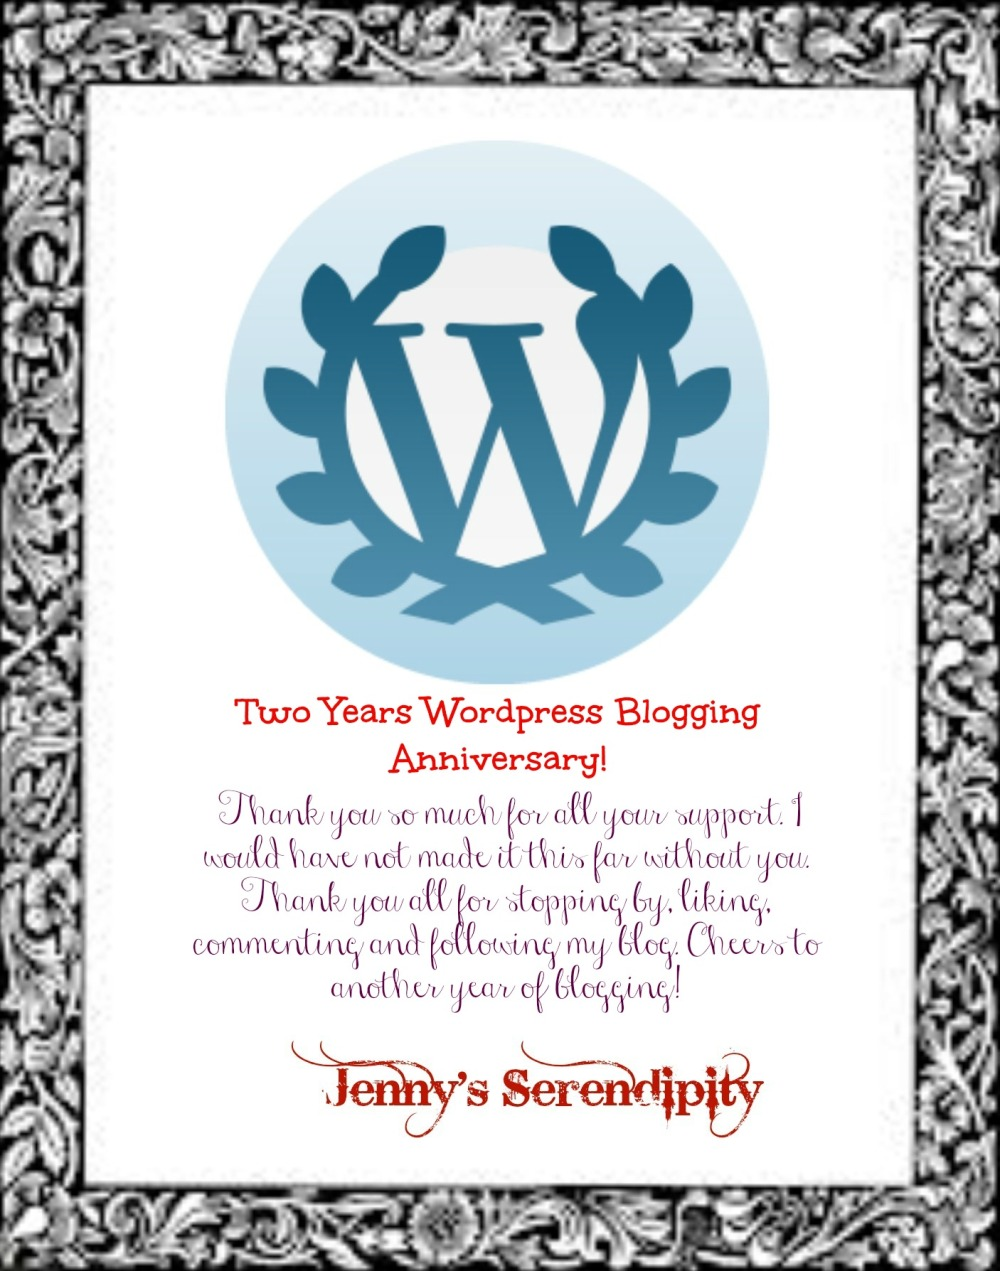 Jennifer Bichara, Jenny's Serendipity, Blog, Blogger, Blogging, Writer, Marketing, Sales, Social Media, Websites, Wordpress, SEO, VA, Virtual Assistant, Online Reputation, ORM, Online Reputation Management Blogging, Web Project, Content Manager